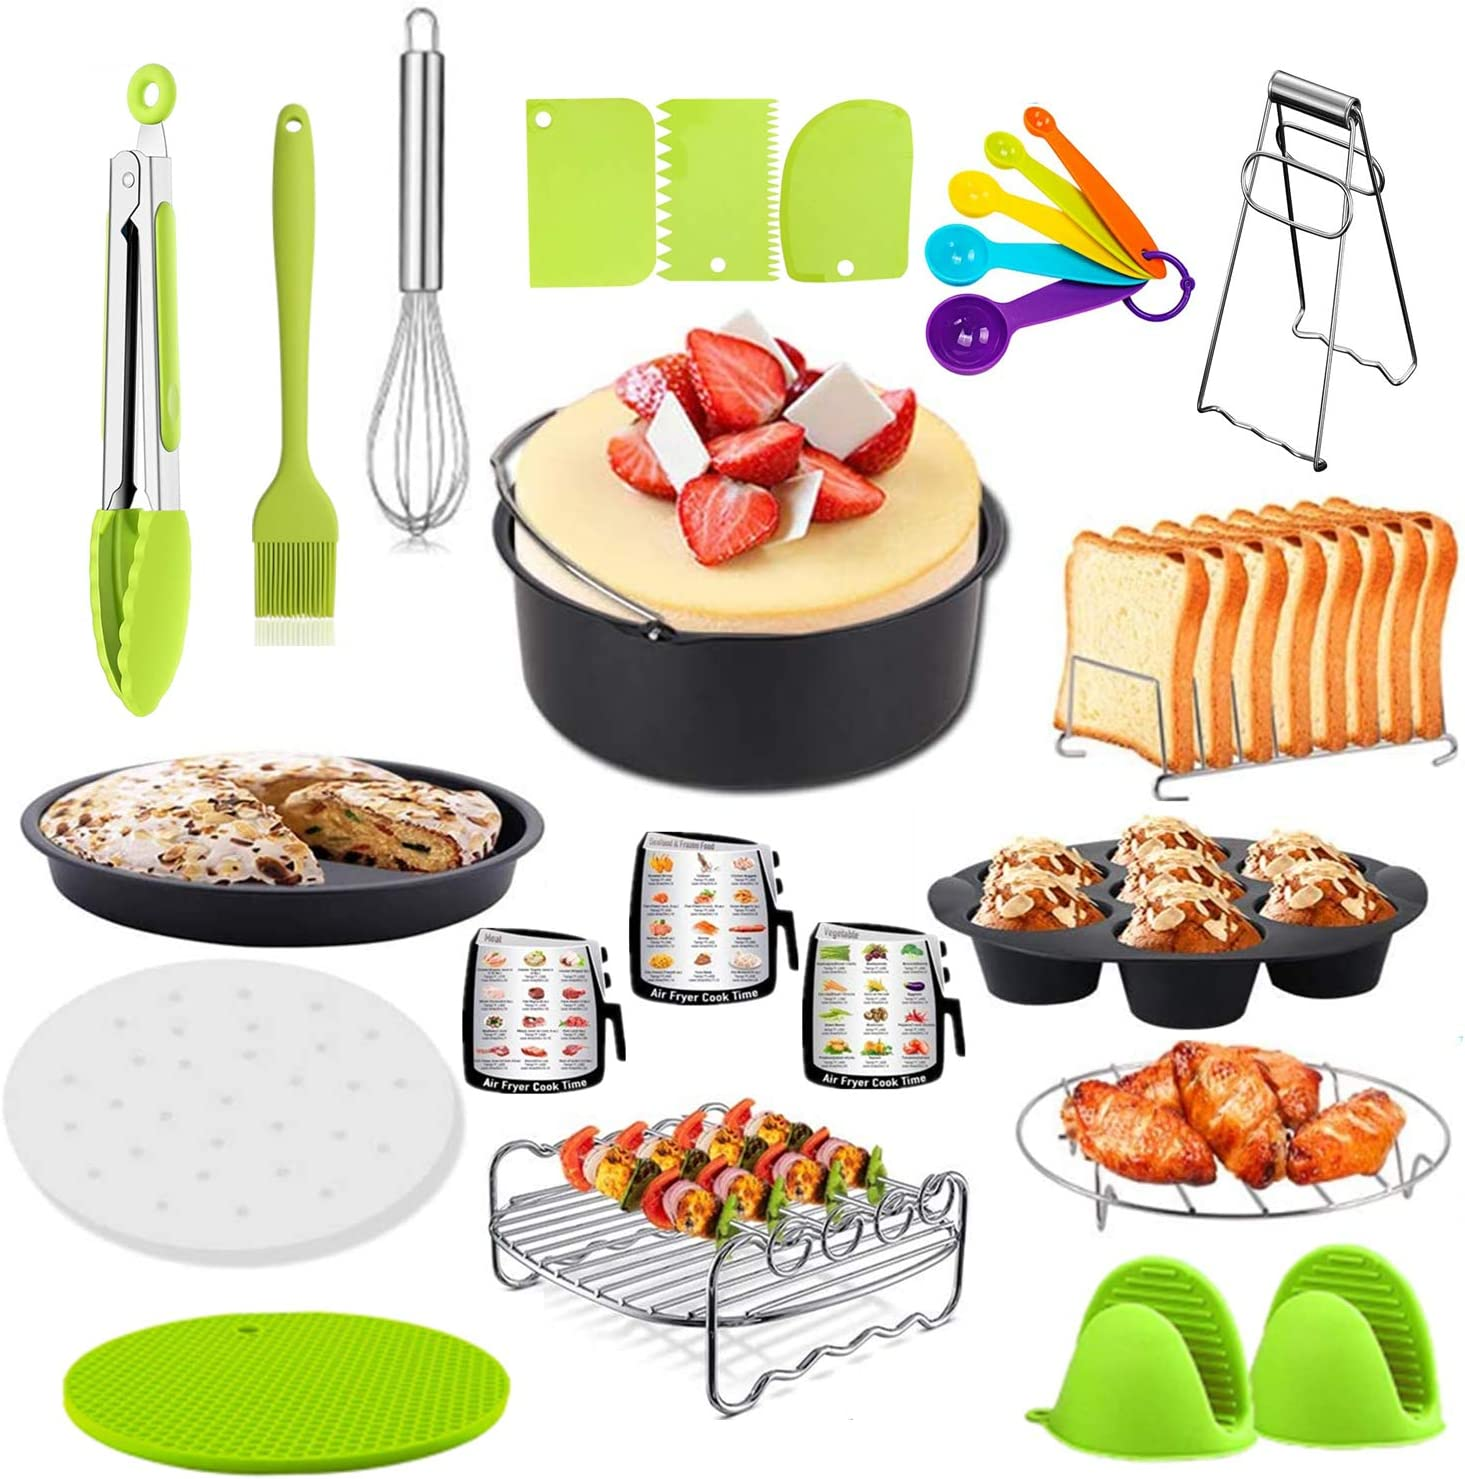 23 Pcs Air Fryer Accessories for Ninja Gowise Cosori Phillips Cozyna,4.2/5.5/5.8/6.5 QT Deep Fryer Accessory with 7 inch Cake Barrel,Pizza Pan,Recipes Cookbook,Skewers Rack,Bread rack,and more-Green